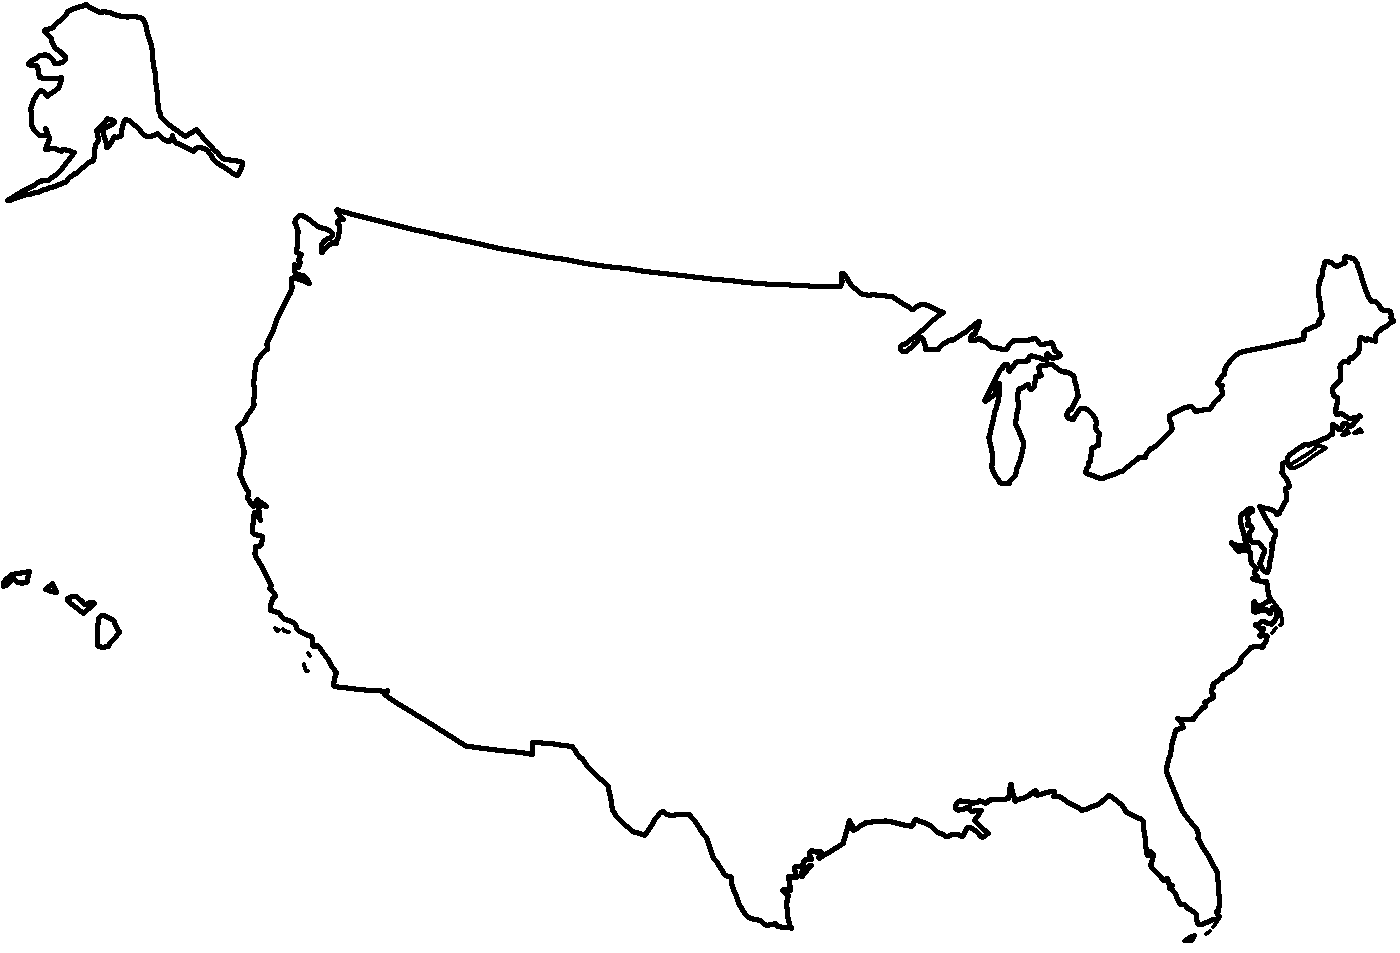 Simple United States Outline Map.Library Of United States Simple Outline Graphic Free Png Files